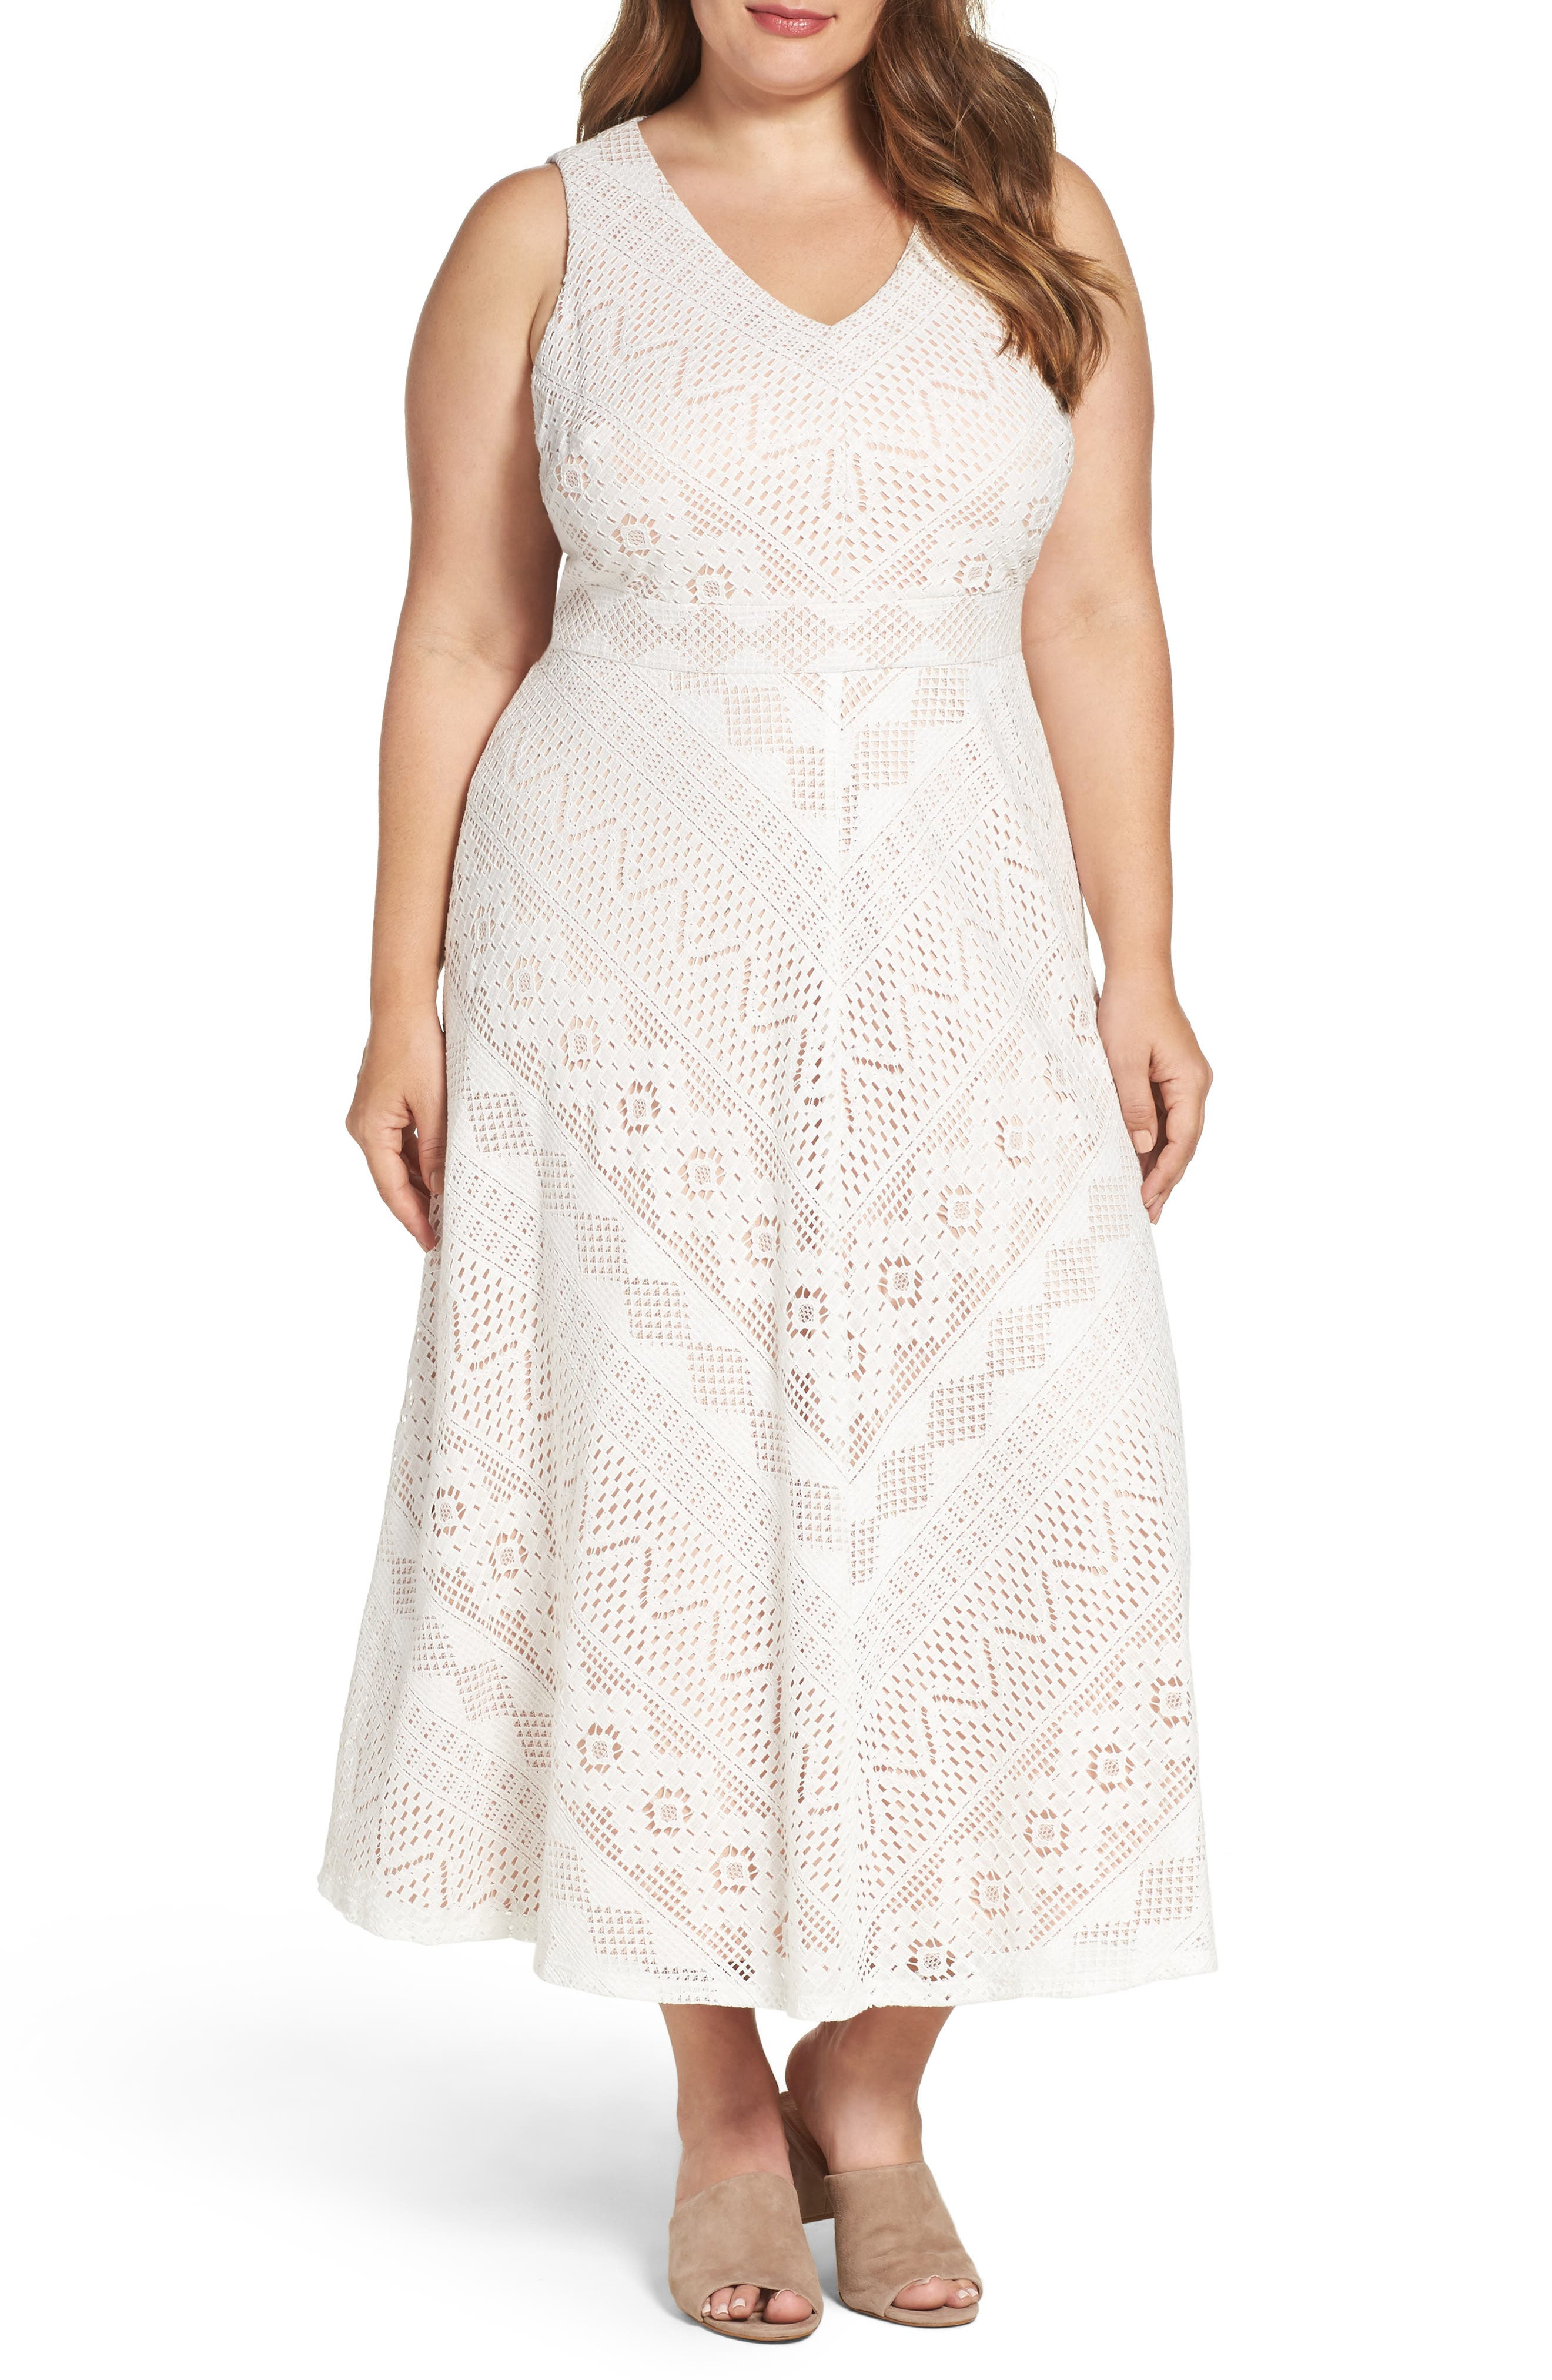 Alternate Image 1 Selected - Vince Camuto Mitered Lace Midi Dress (Plus Size)